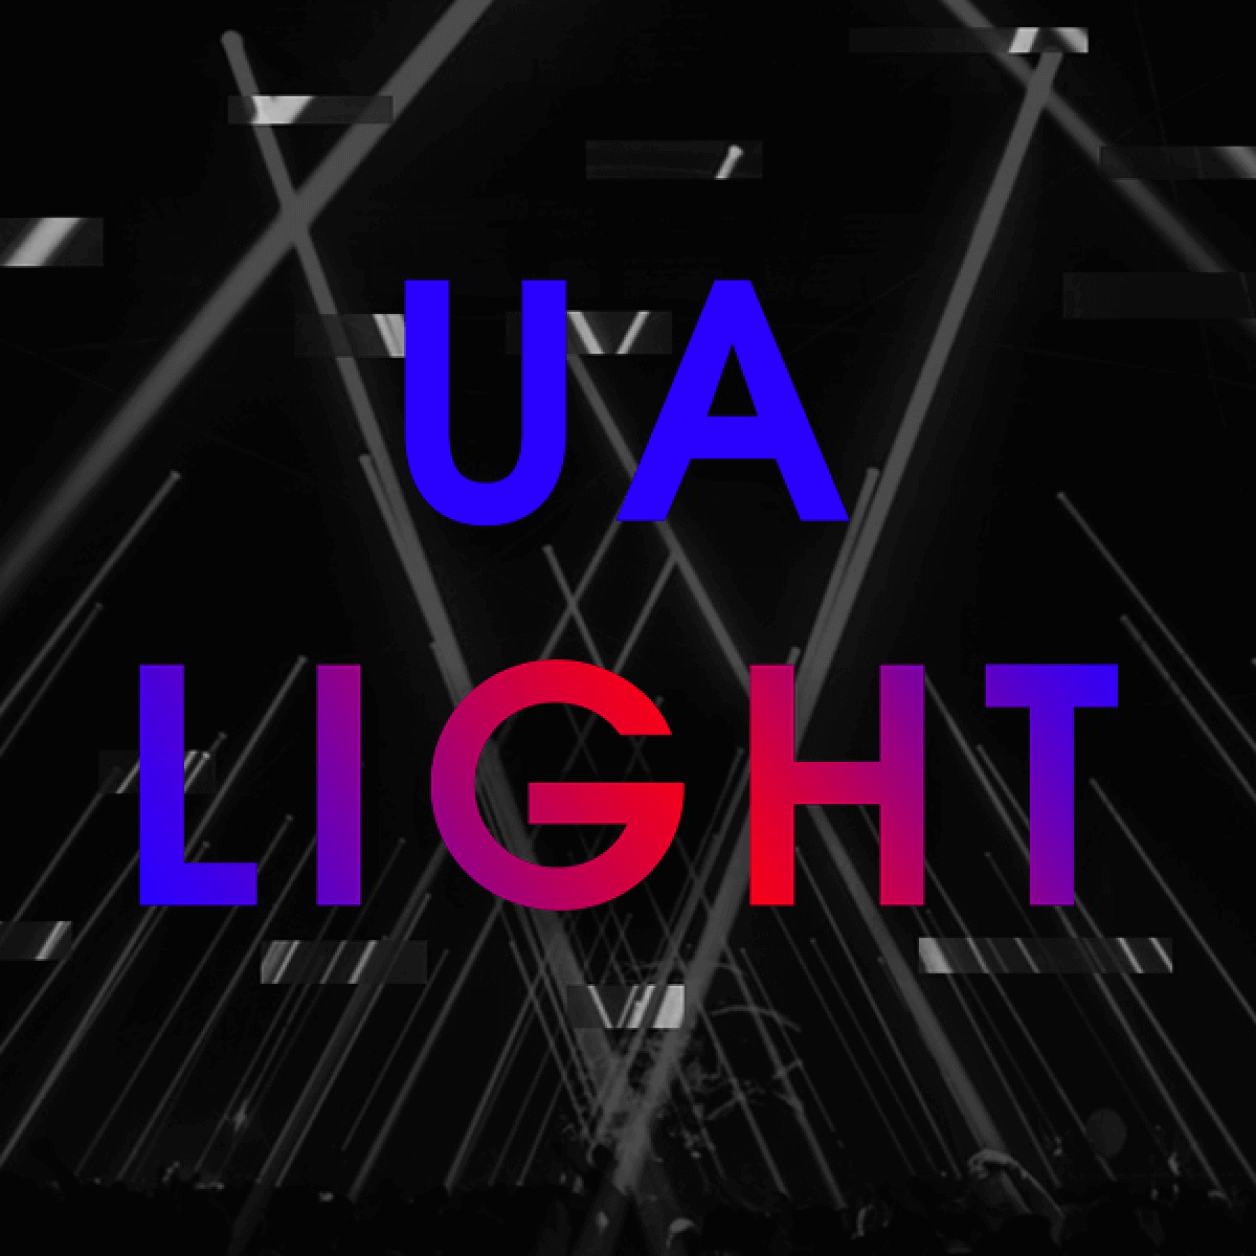 Ua light